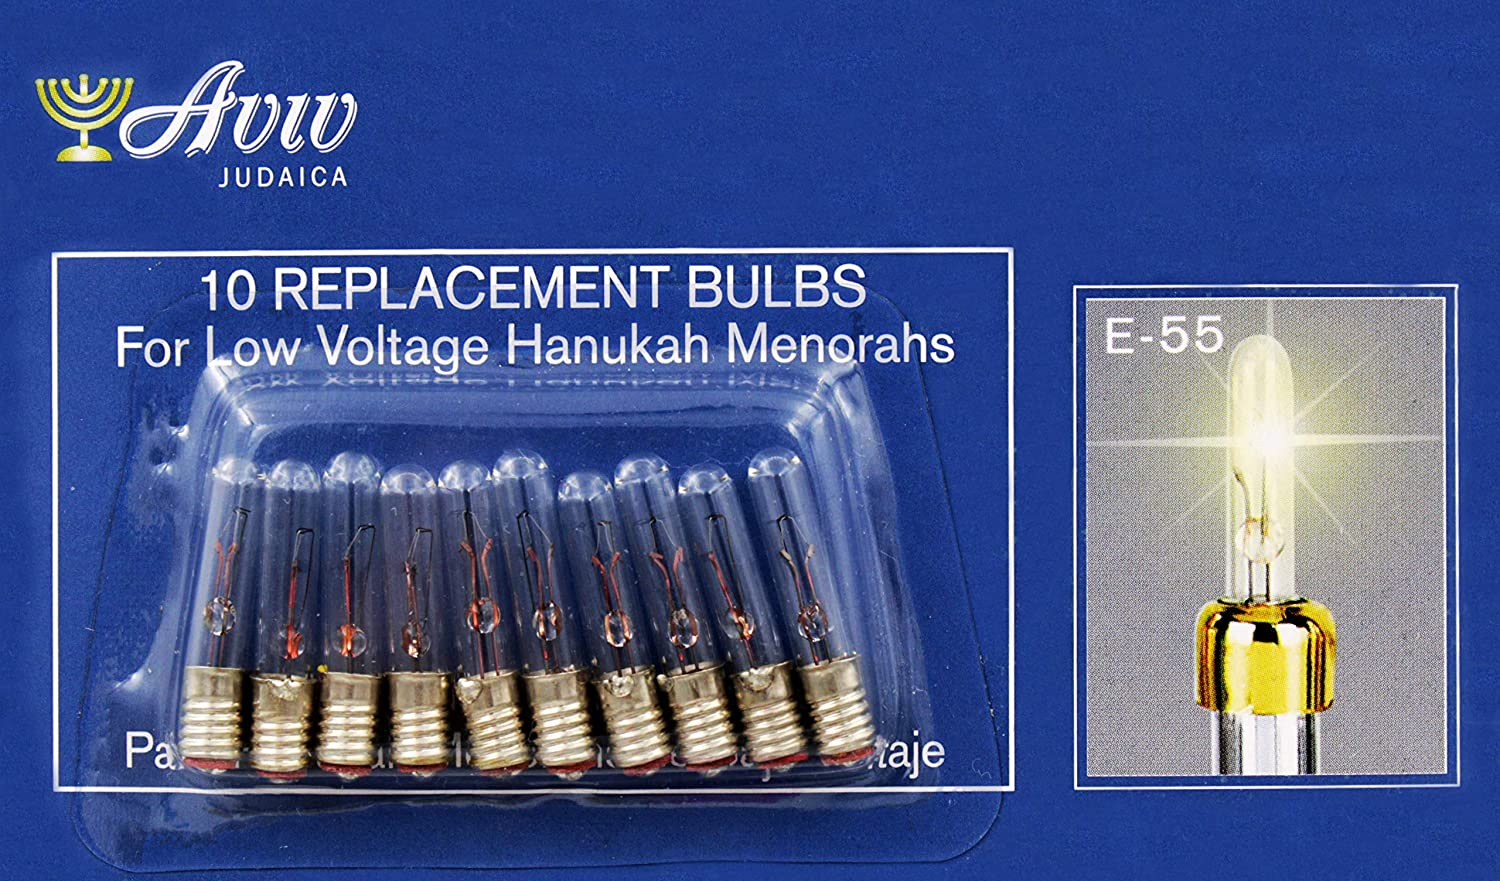 Low Voltage Replacement Bulbs for Low Voltage Hanukah Menorah Aviv Judaica Imports E-5